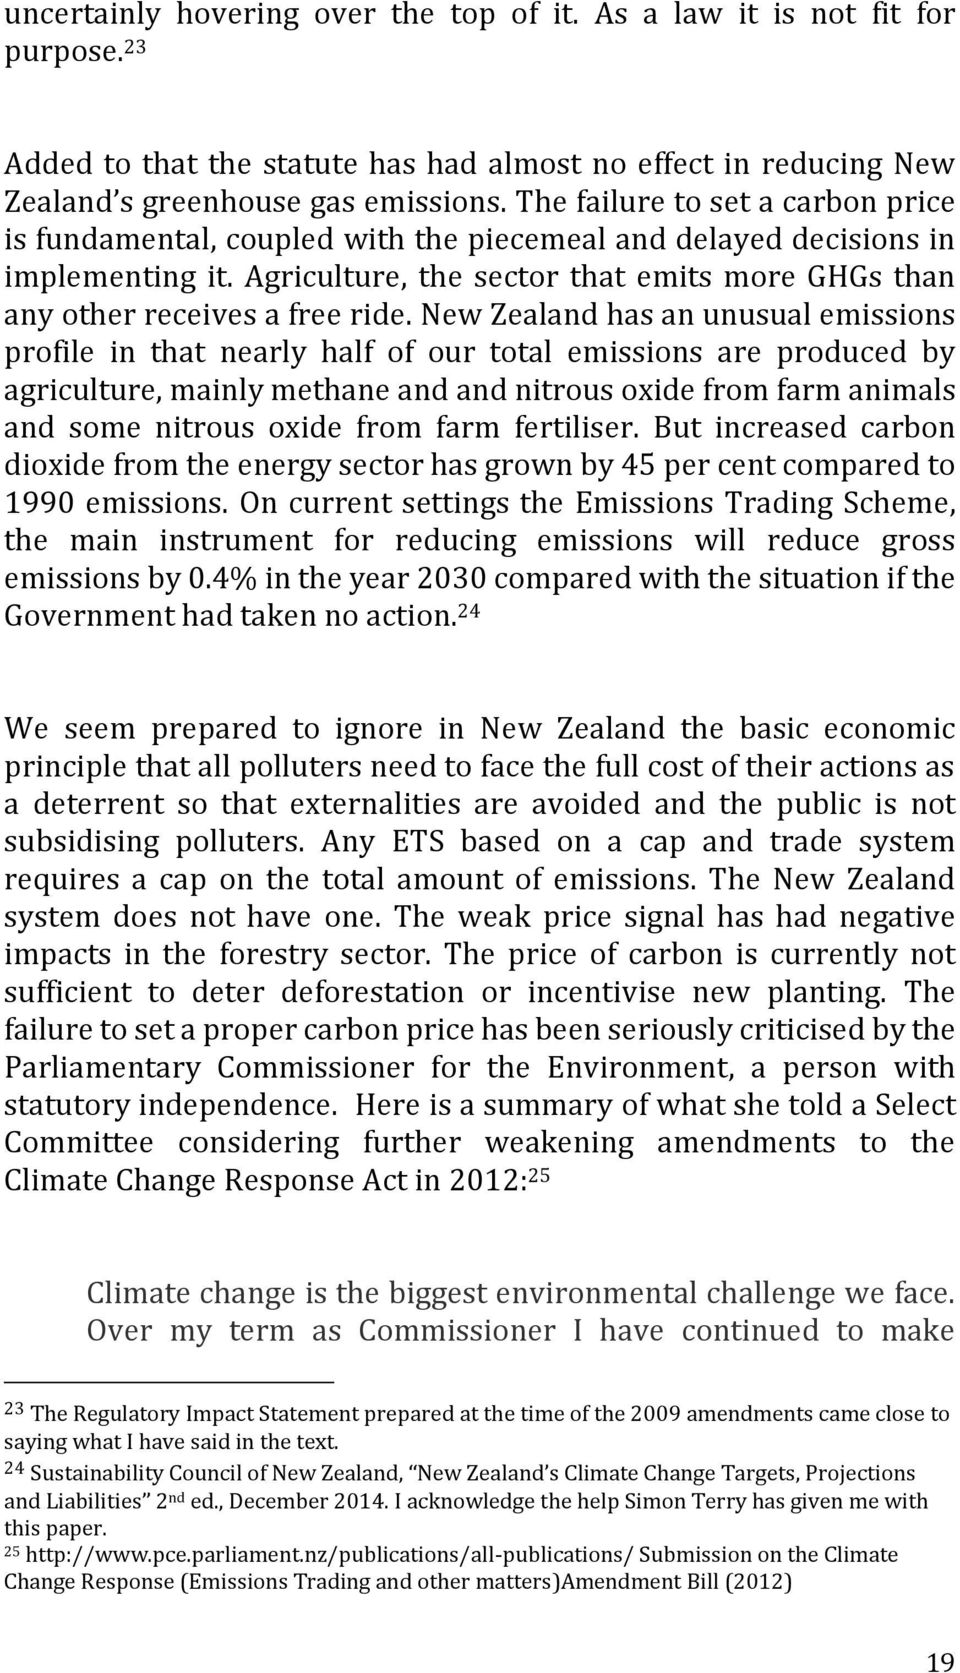 New Zealand has an unusual emissions profile in that nearly half of our total emissions are produced by agriculture, mainly methane and and nitrous oxide from farm animals and some nitrous oxide from